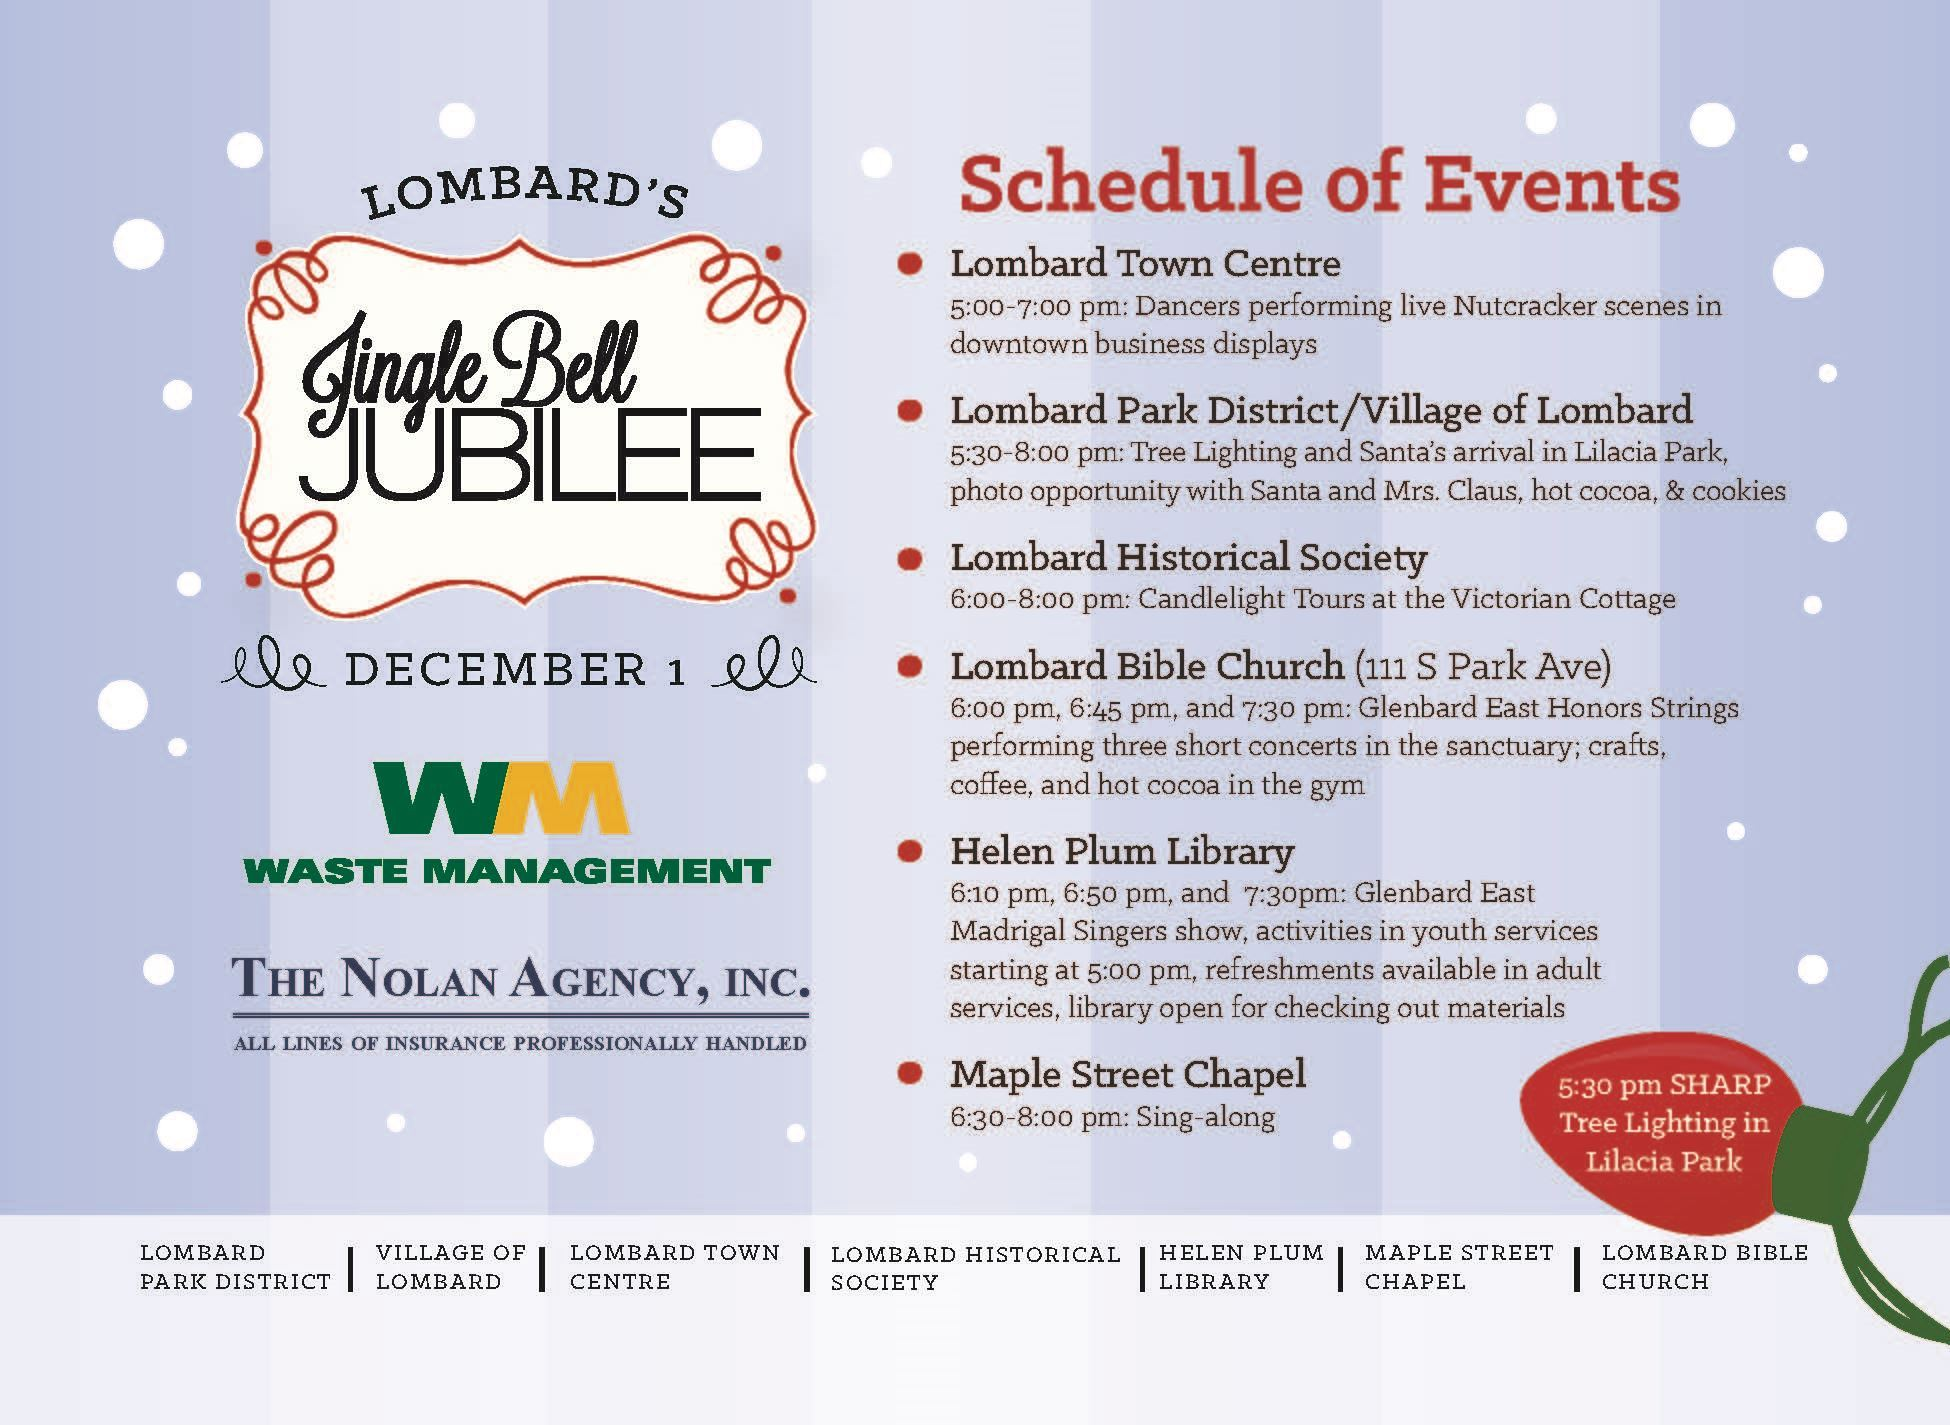 JingleBell Jubilee Schedule of Events